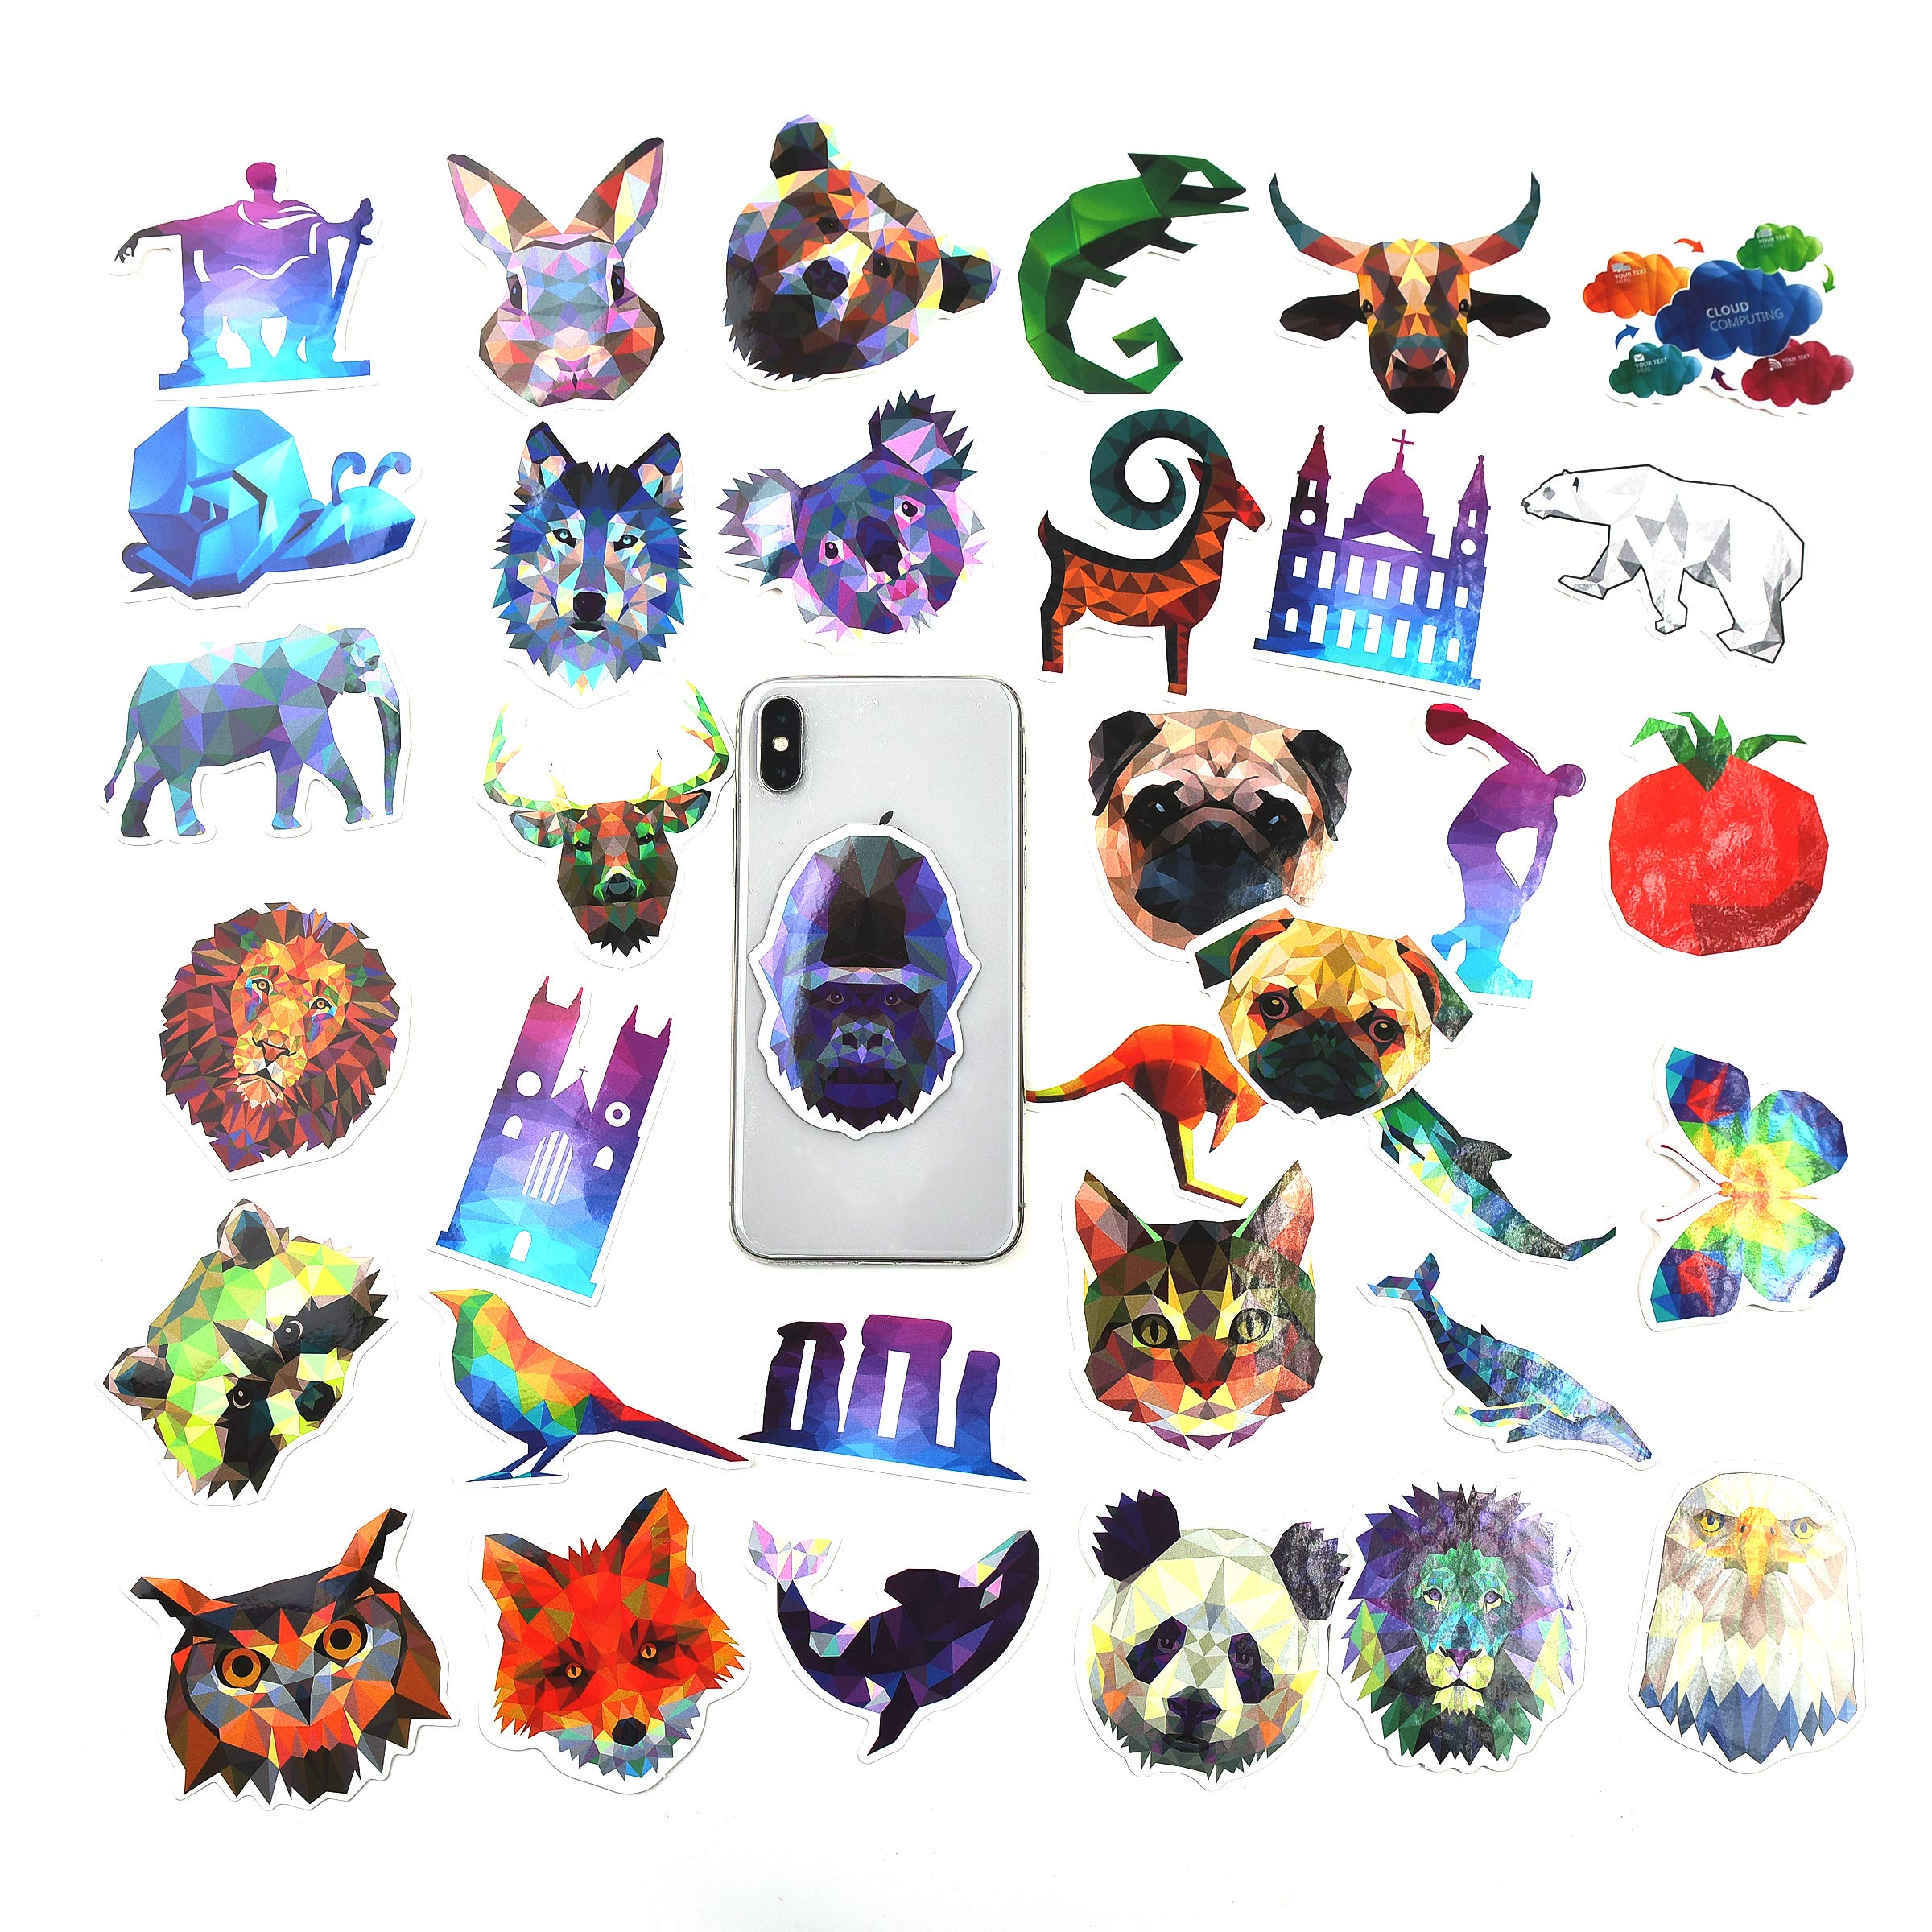 Mizzuco Vinyl Stickers Waterproof Animals Stickers 35 Pieces for Teens Girls Laptop Bumper Helmet Ipad Car Luggage Water Bottle (JH13)